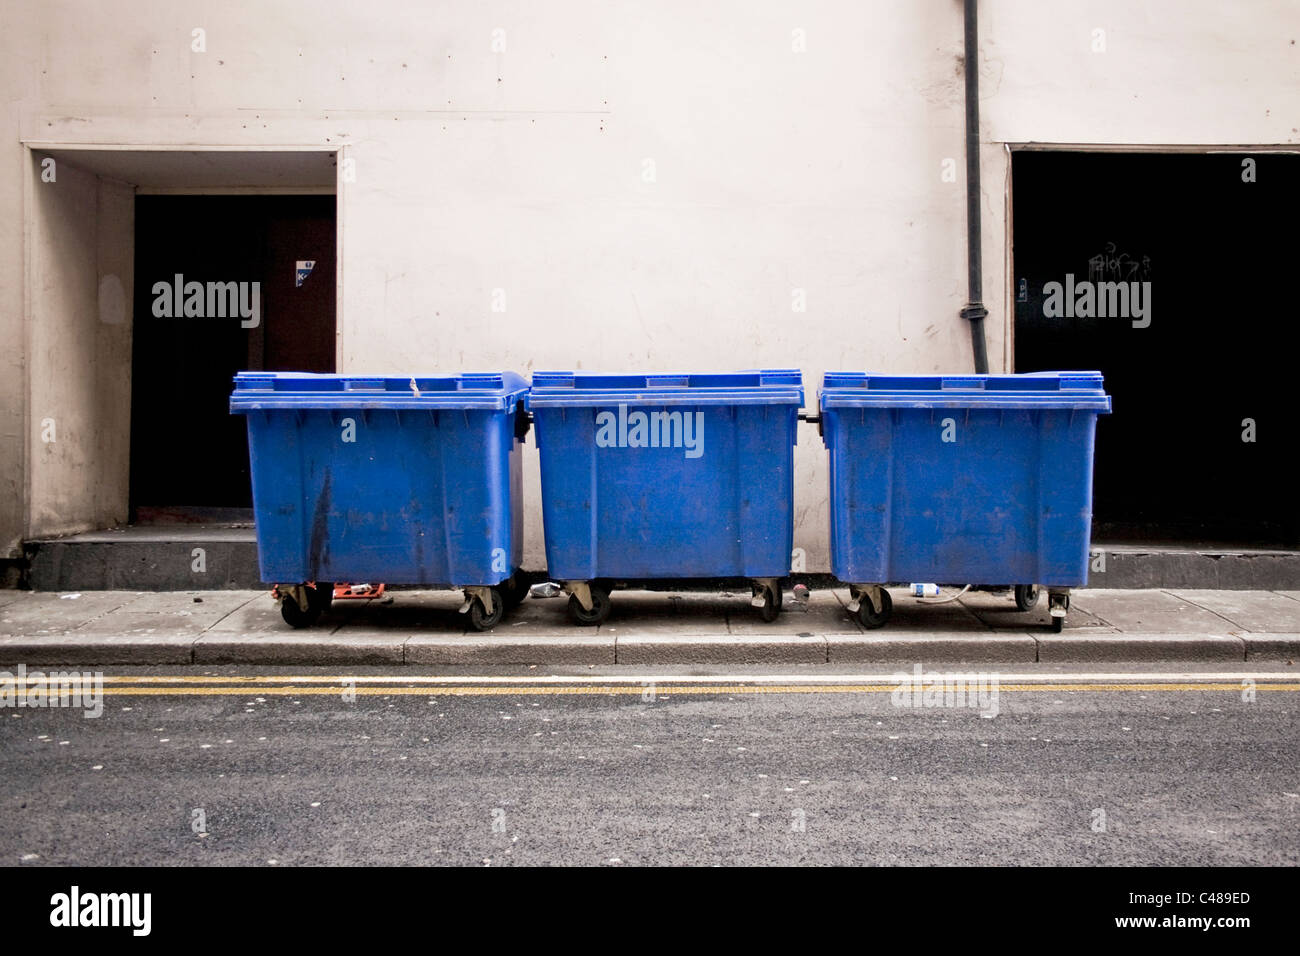 Three large rubbish bins stand at the side of an empty Manchester street. - Stock Image